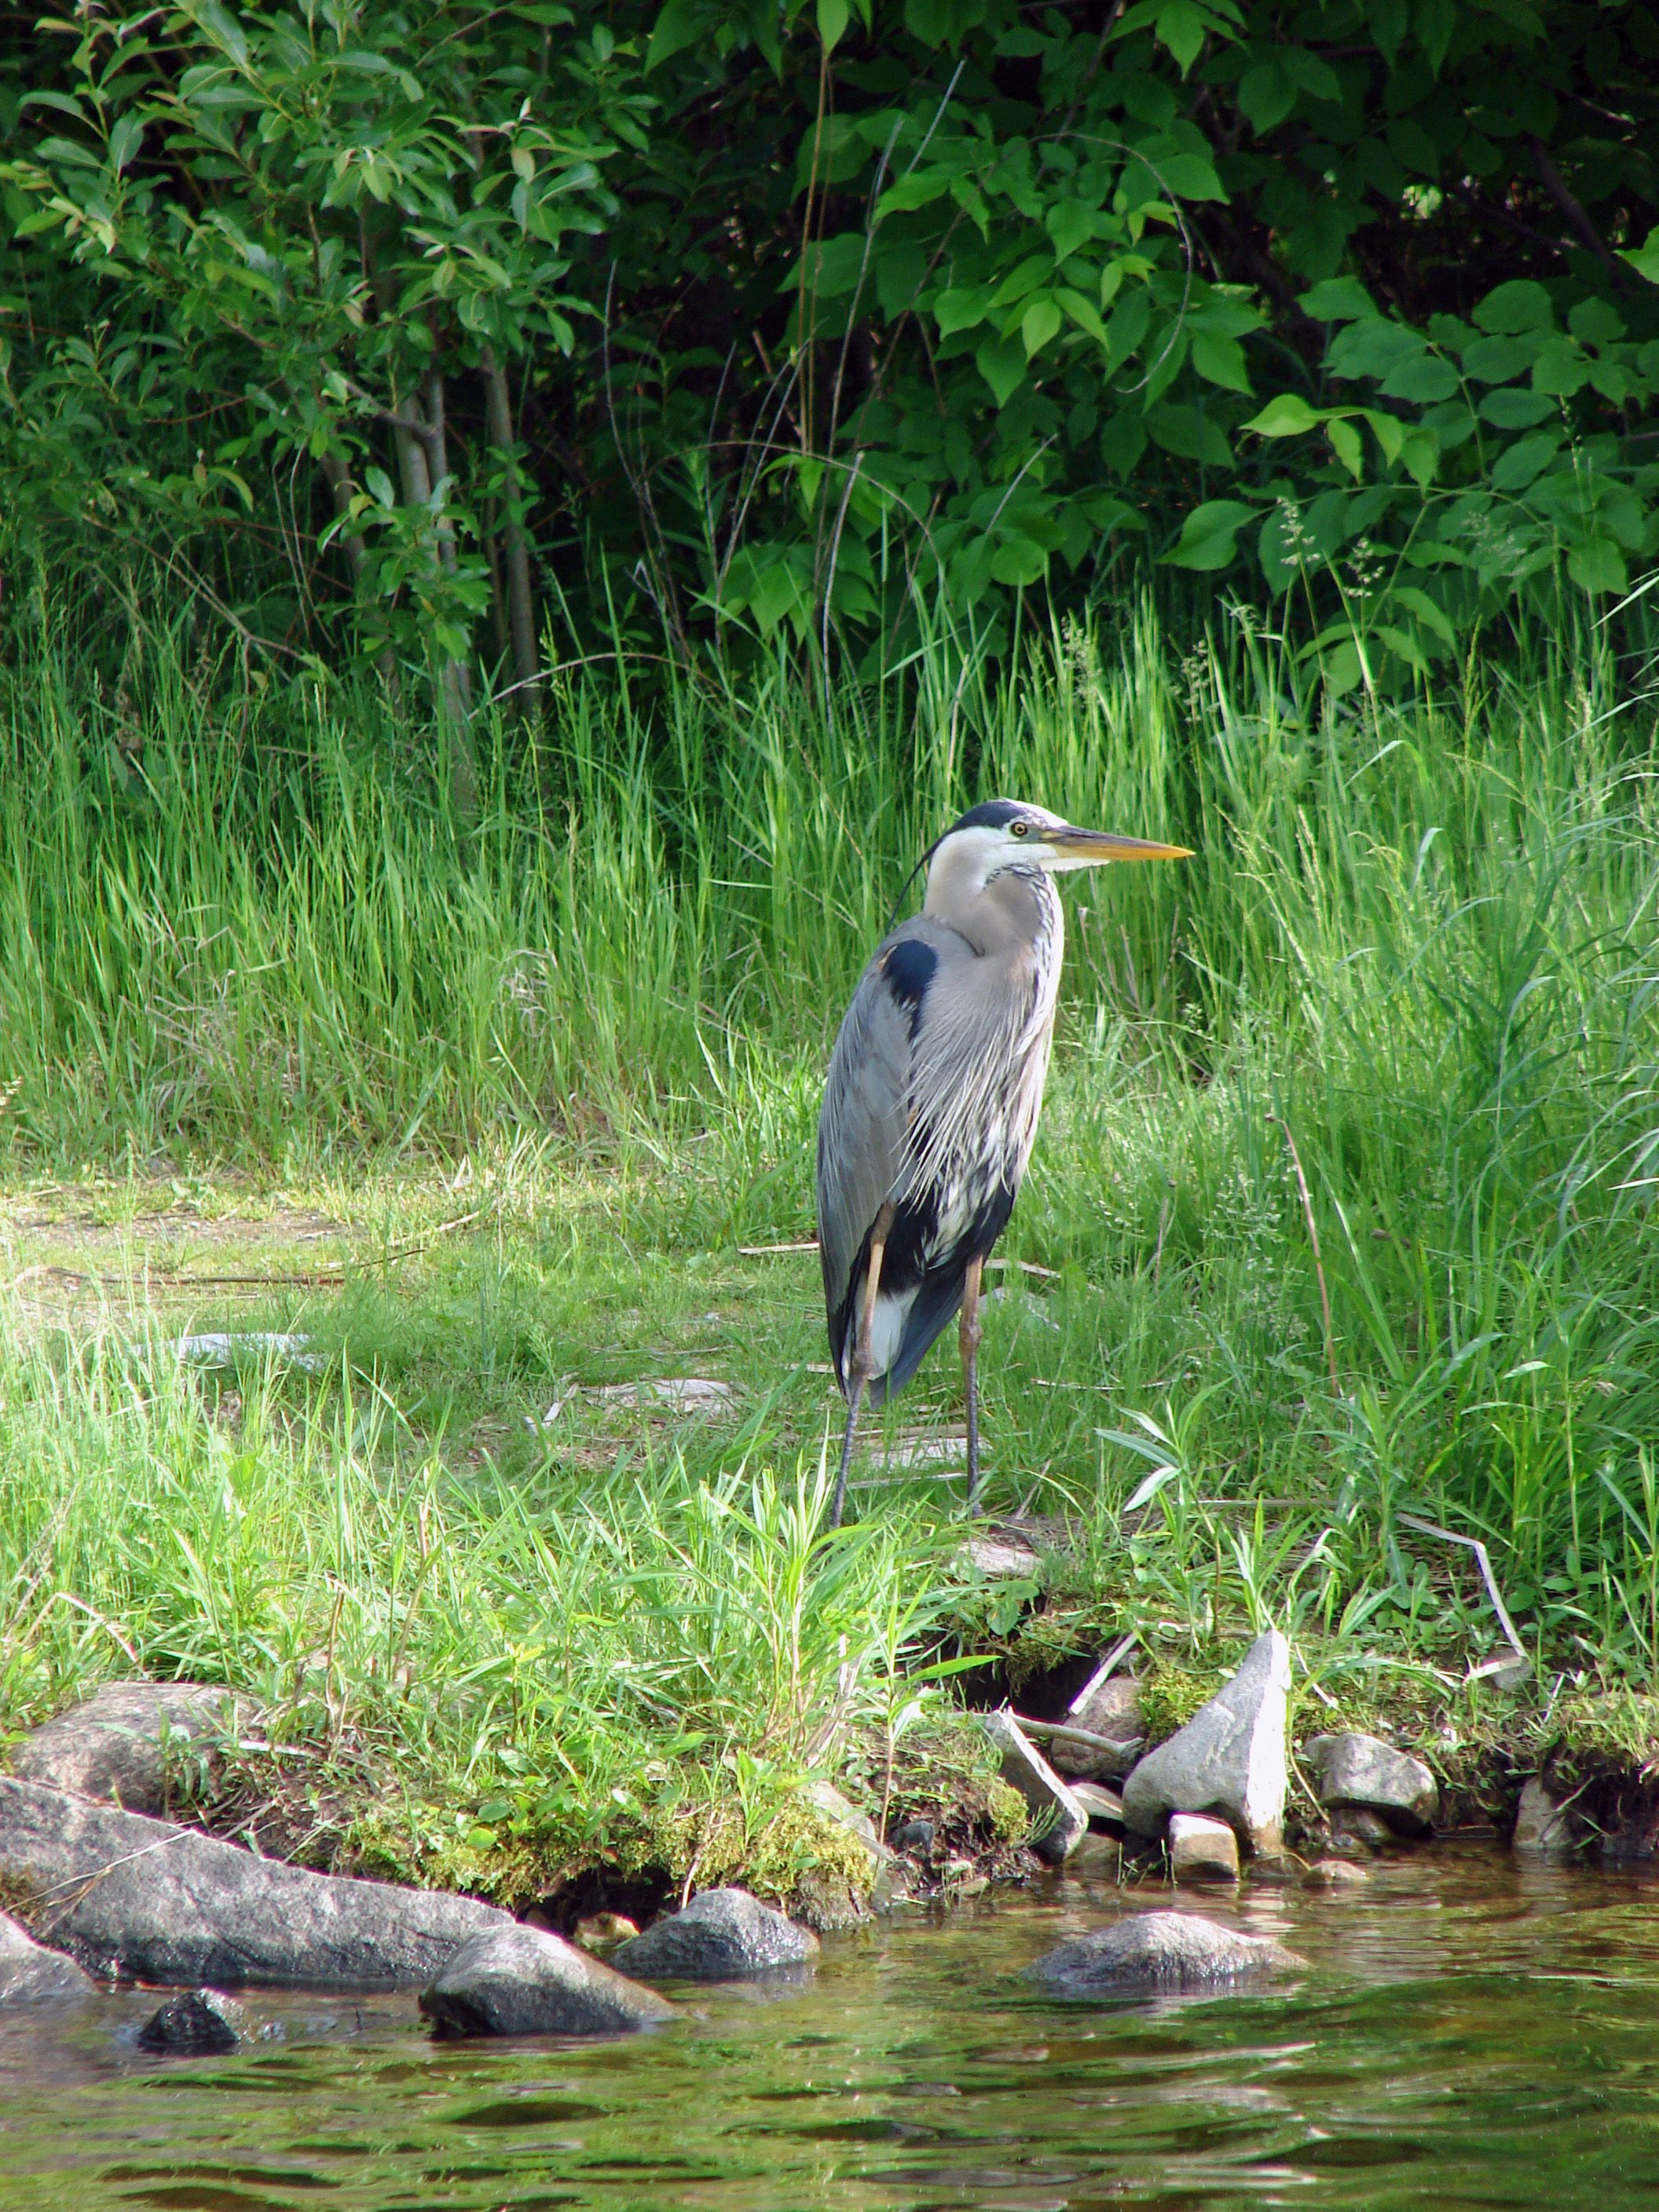 Great Blue Heron (Ardea hernias) [Photo taken by J.Lewis at the Bois Forte Indian Reservation - Bois Forte Band of Chippewa, north-eastern Minnesota, with a 6 MP digital camera.]